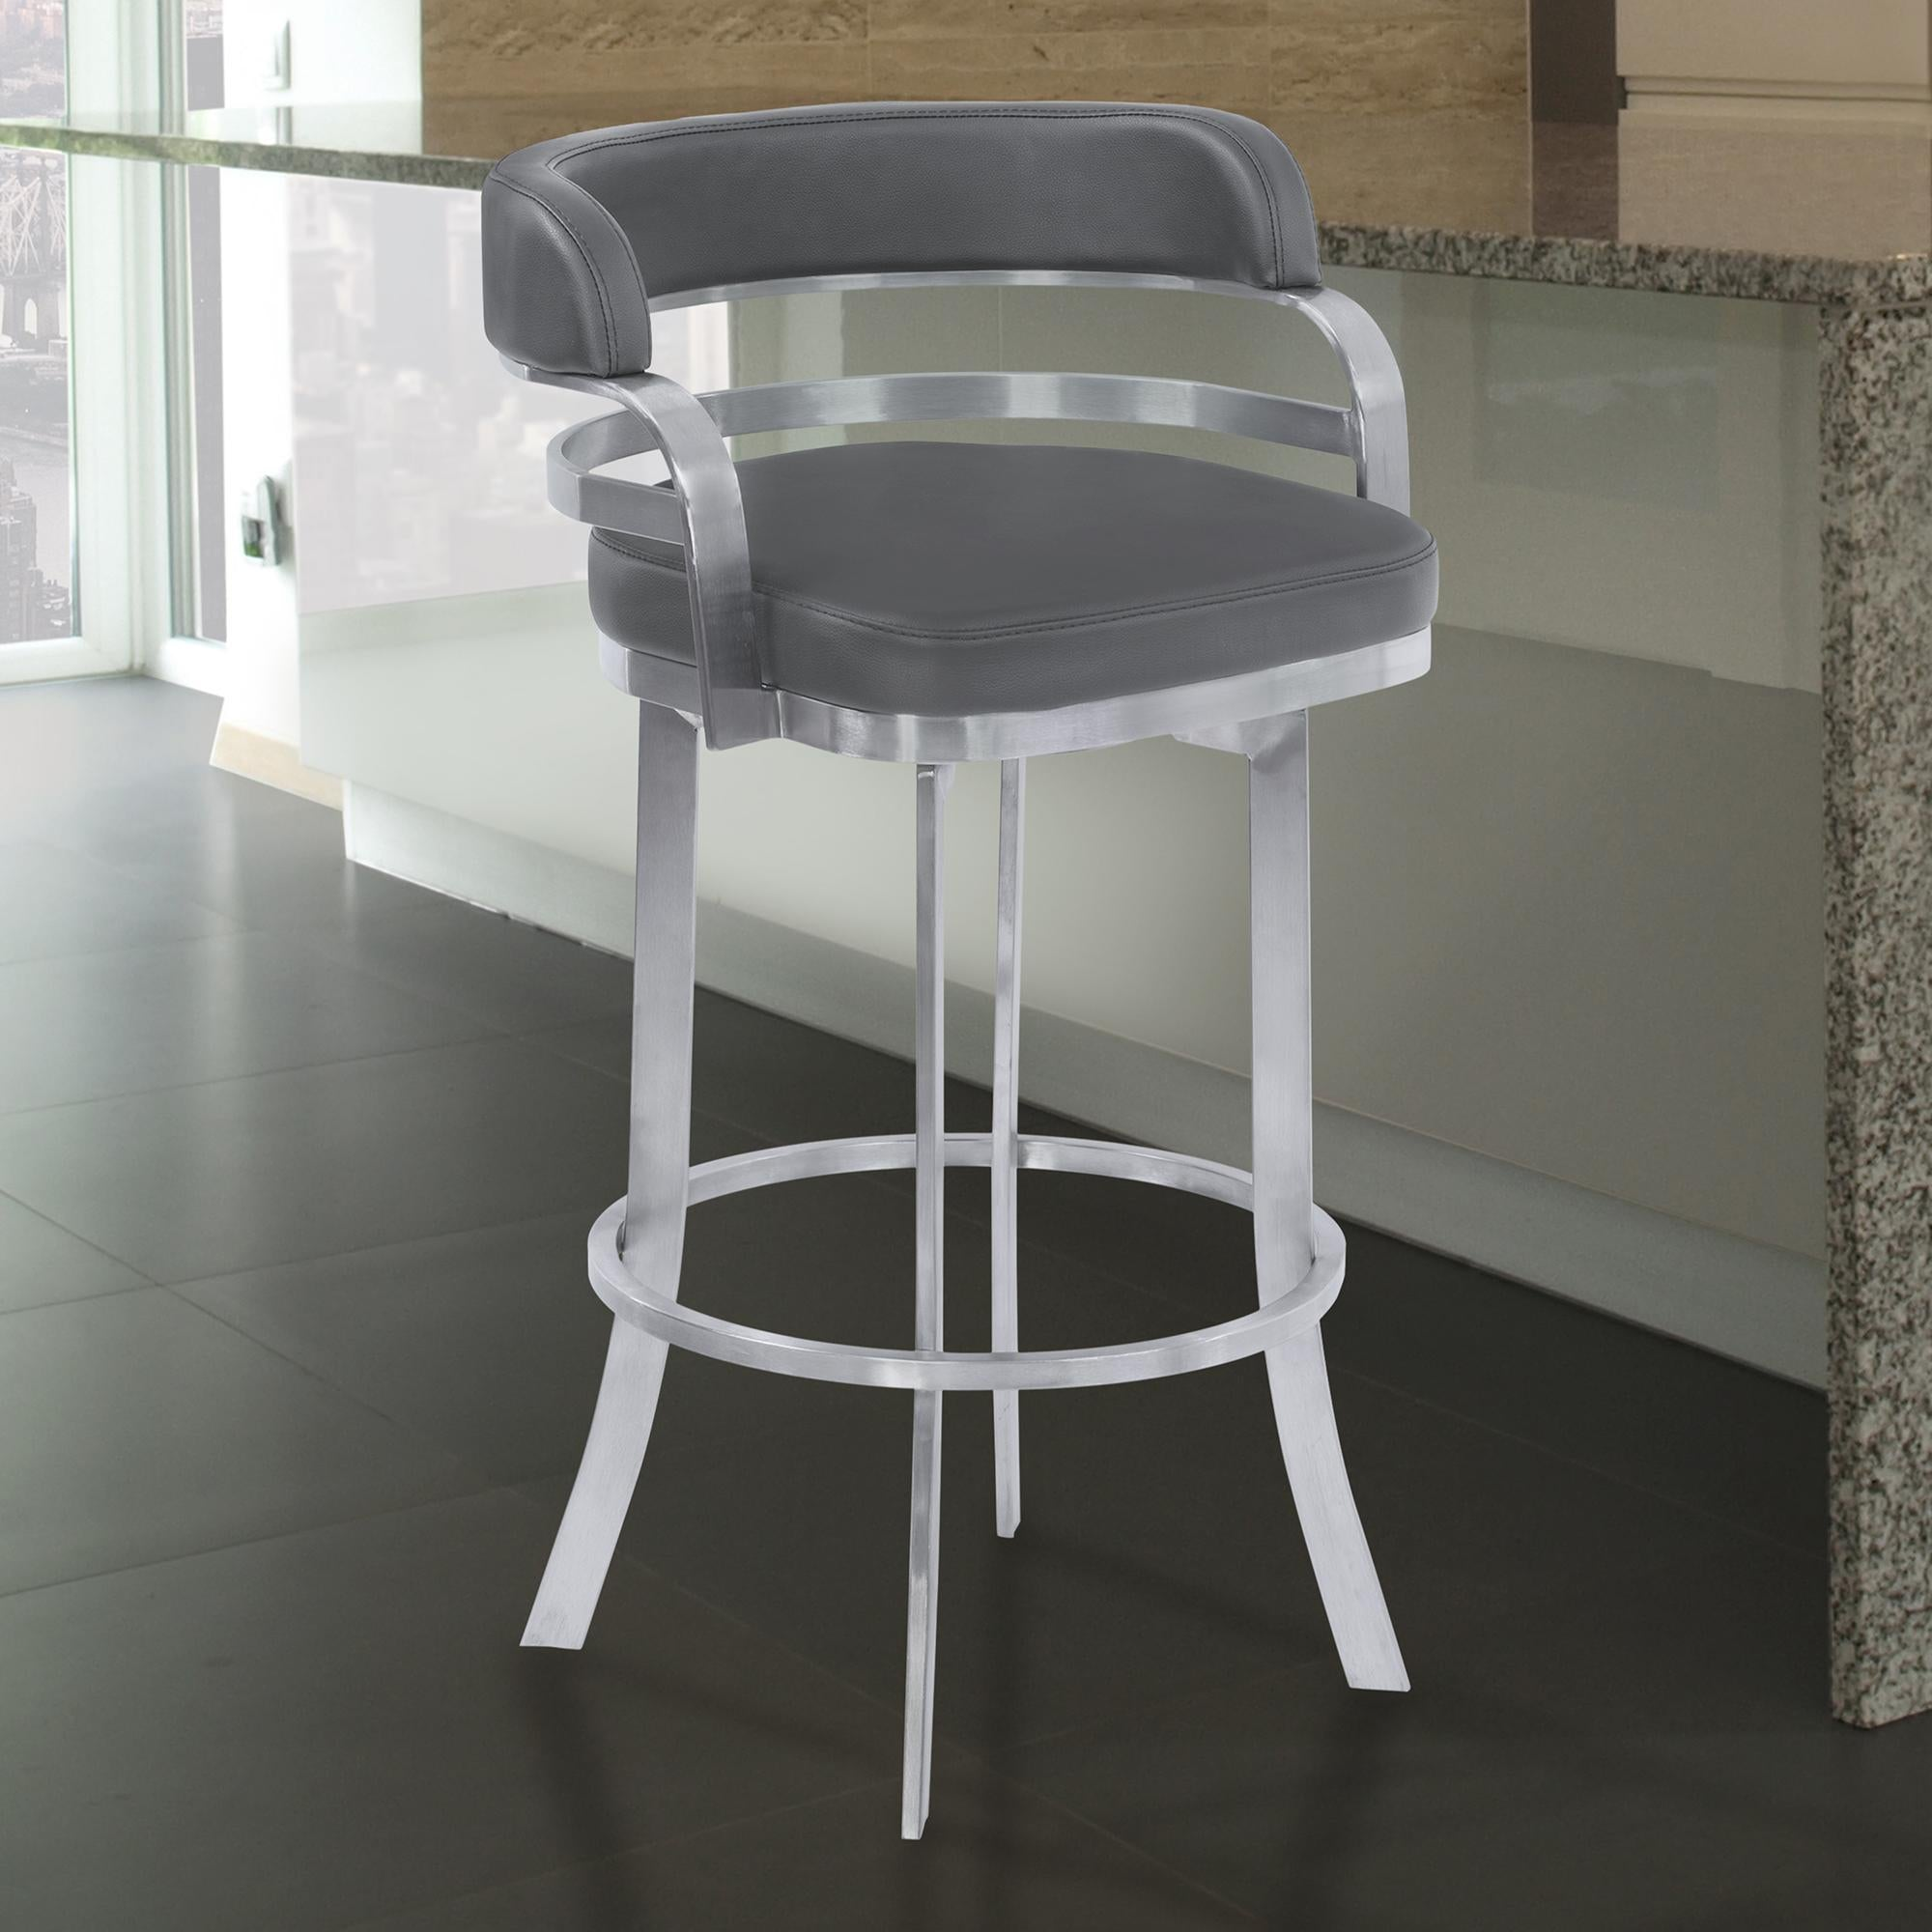 Armen Living Prinz 30' Bar Height Metal Swivel Barstool in Gray Faux Leather with Brushed Stainless Steel Finish